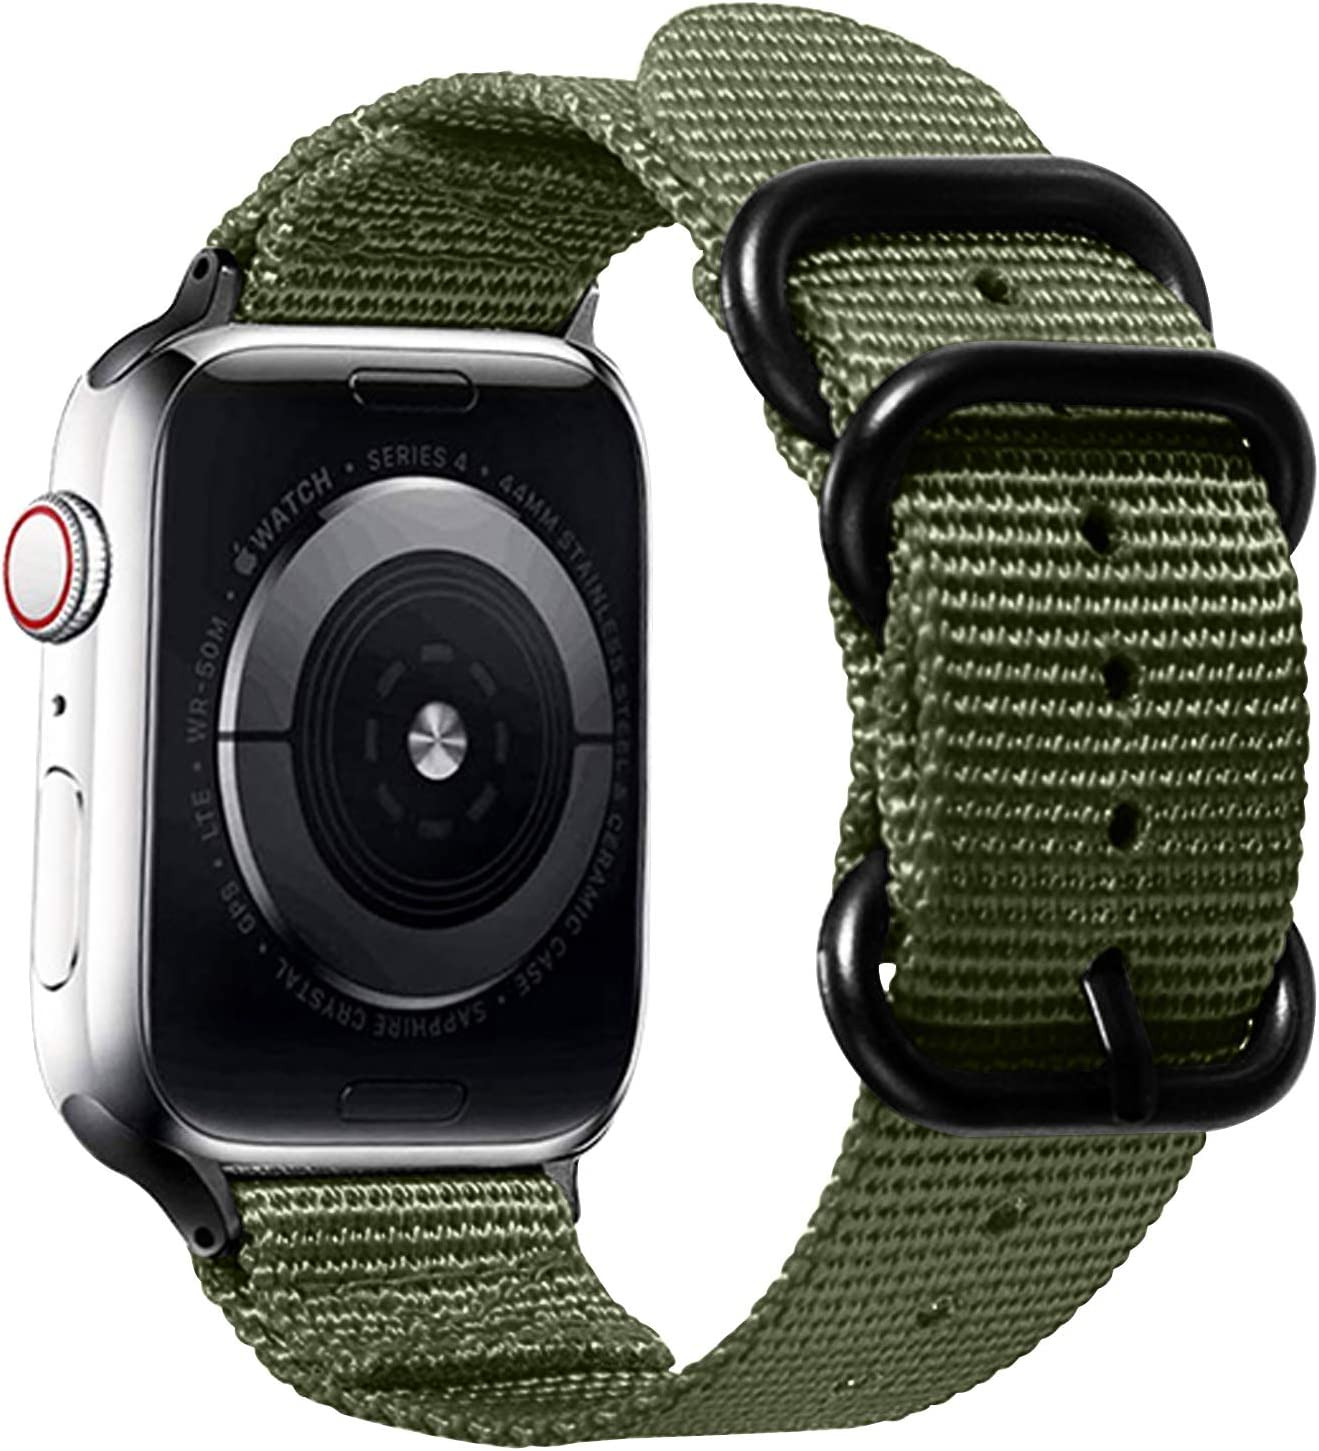 Watpro Compatible with Apple Watch Band 38mm 40mm 42mm 44mm Women Men Nylon Rugged Replacement iWatch Band Military-Style Buckle Grey Adapters for Sport Series 5 4 3 2 1 (1-Army Green, 42MM/44MM)